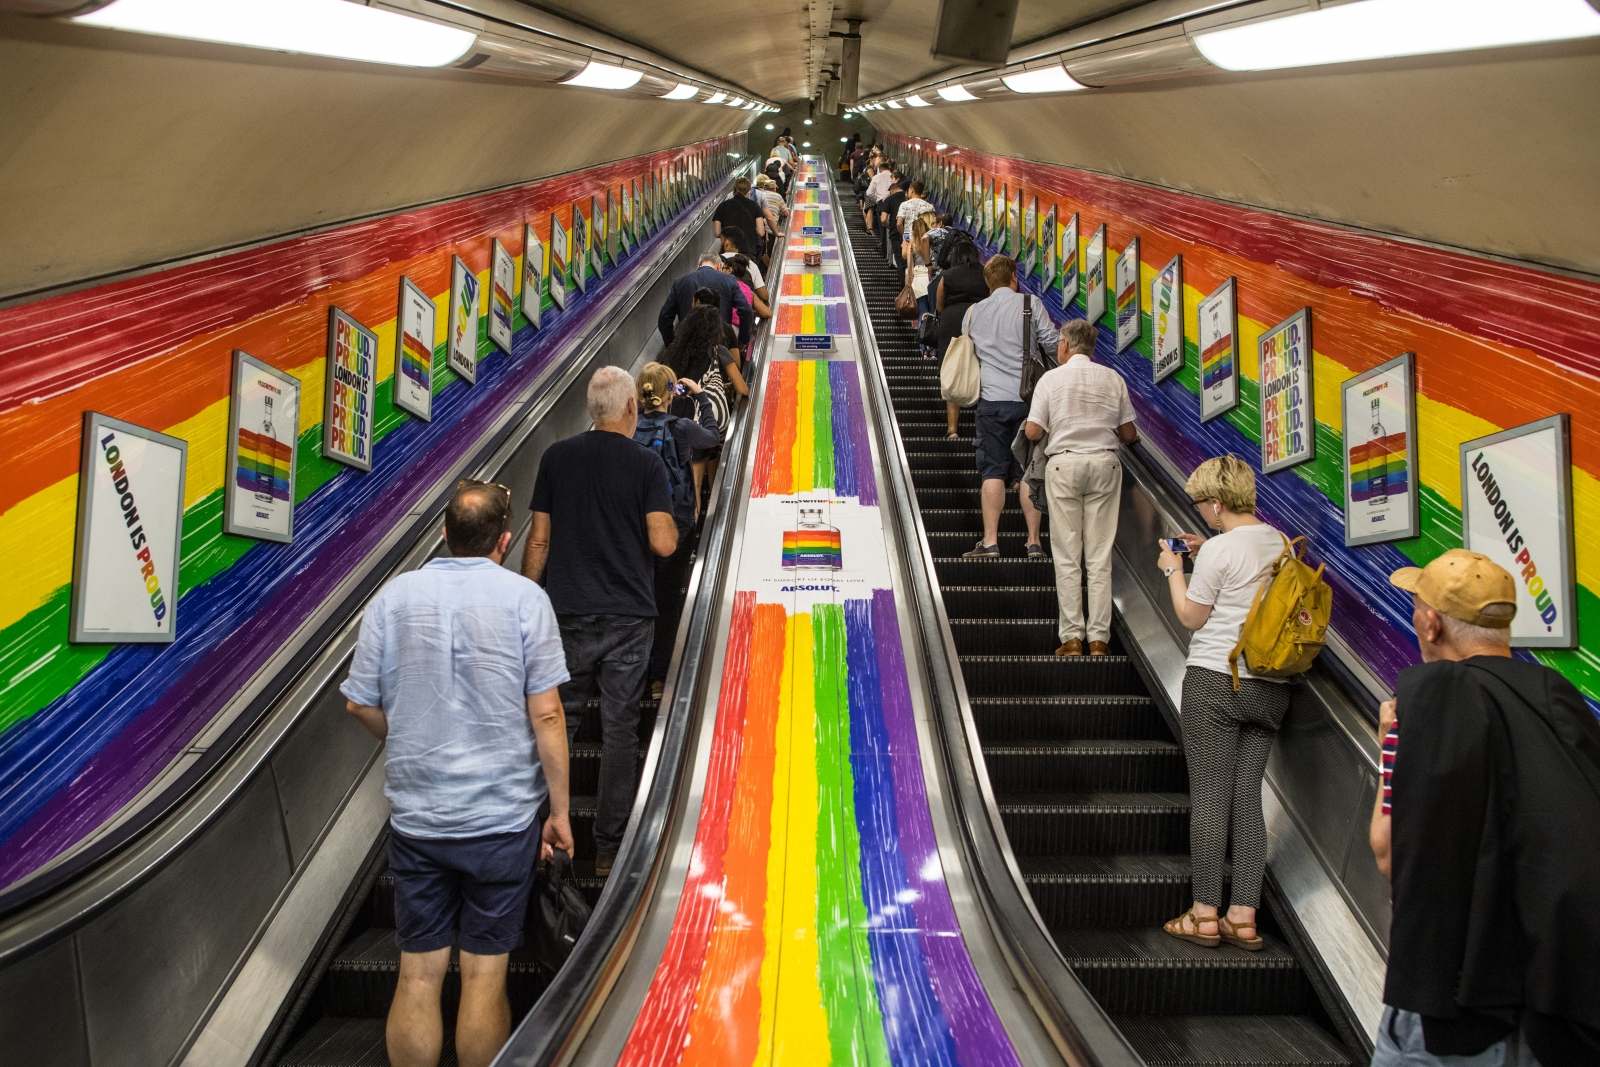 London's transport system is going gender neutral